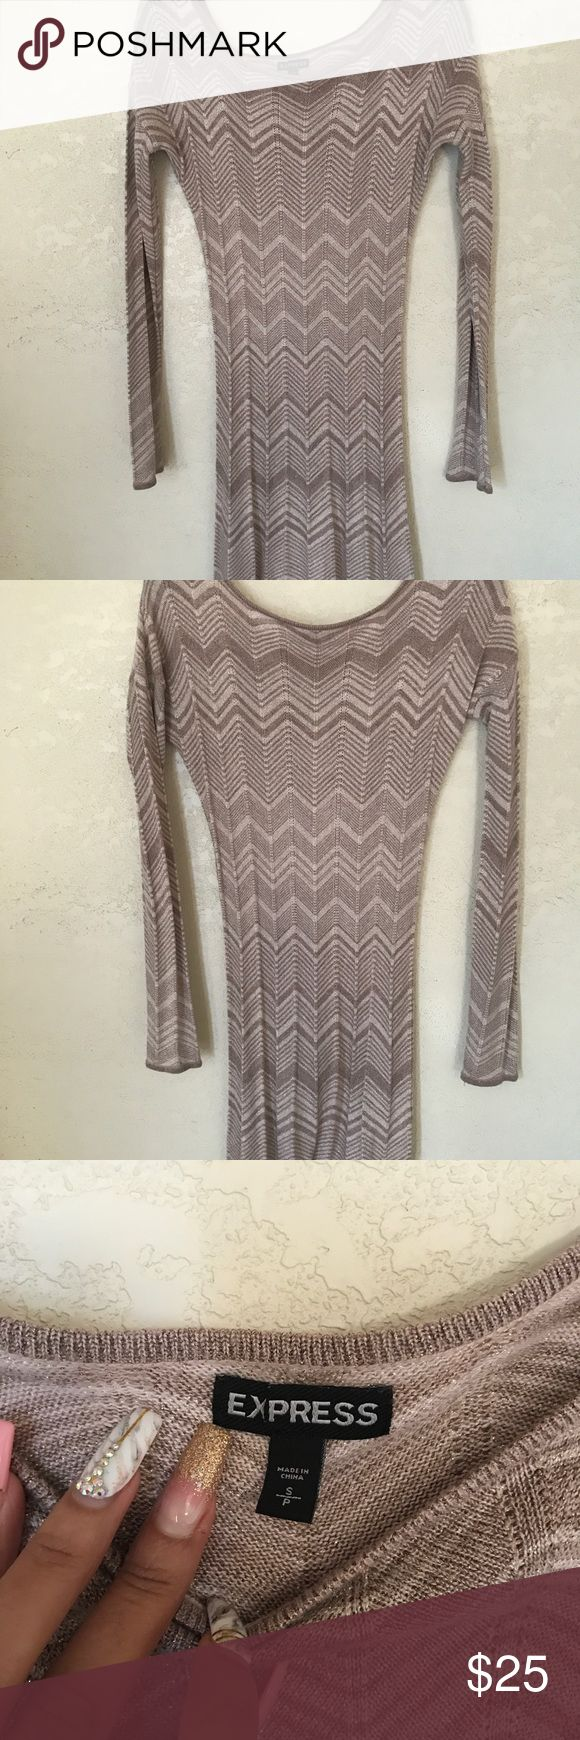 Express Metallic Bodycon Dress Worn twice Very good condition  Size Small Nude, silver, brown in color Express Dresses Long Sleeve